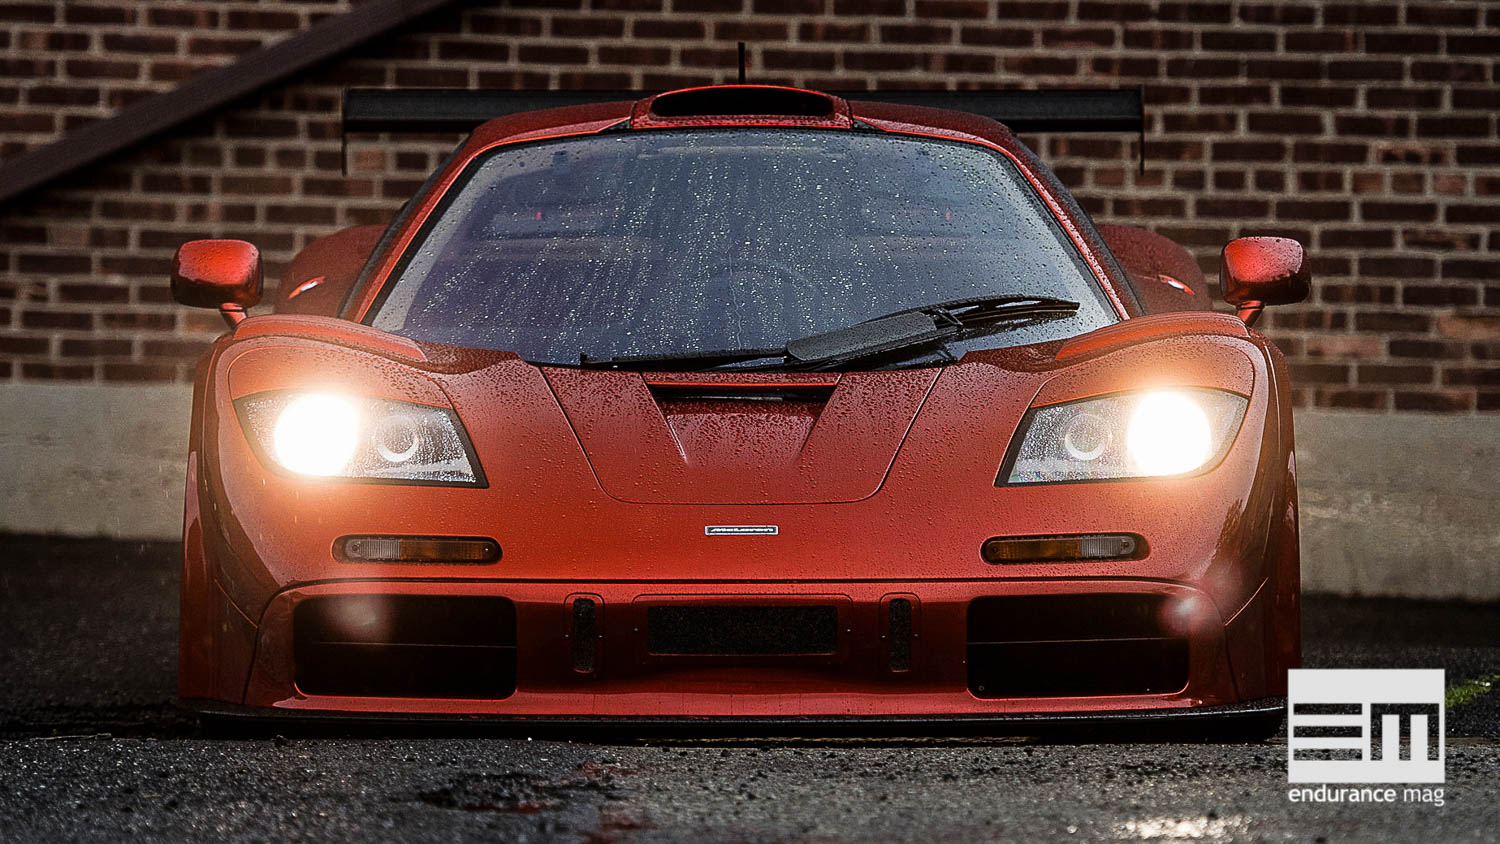 McLaren F1 chassis #073 LM